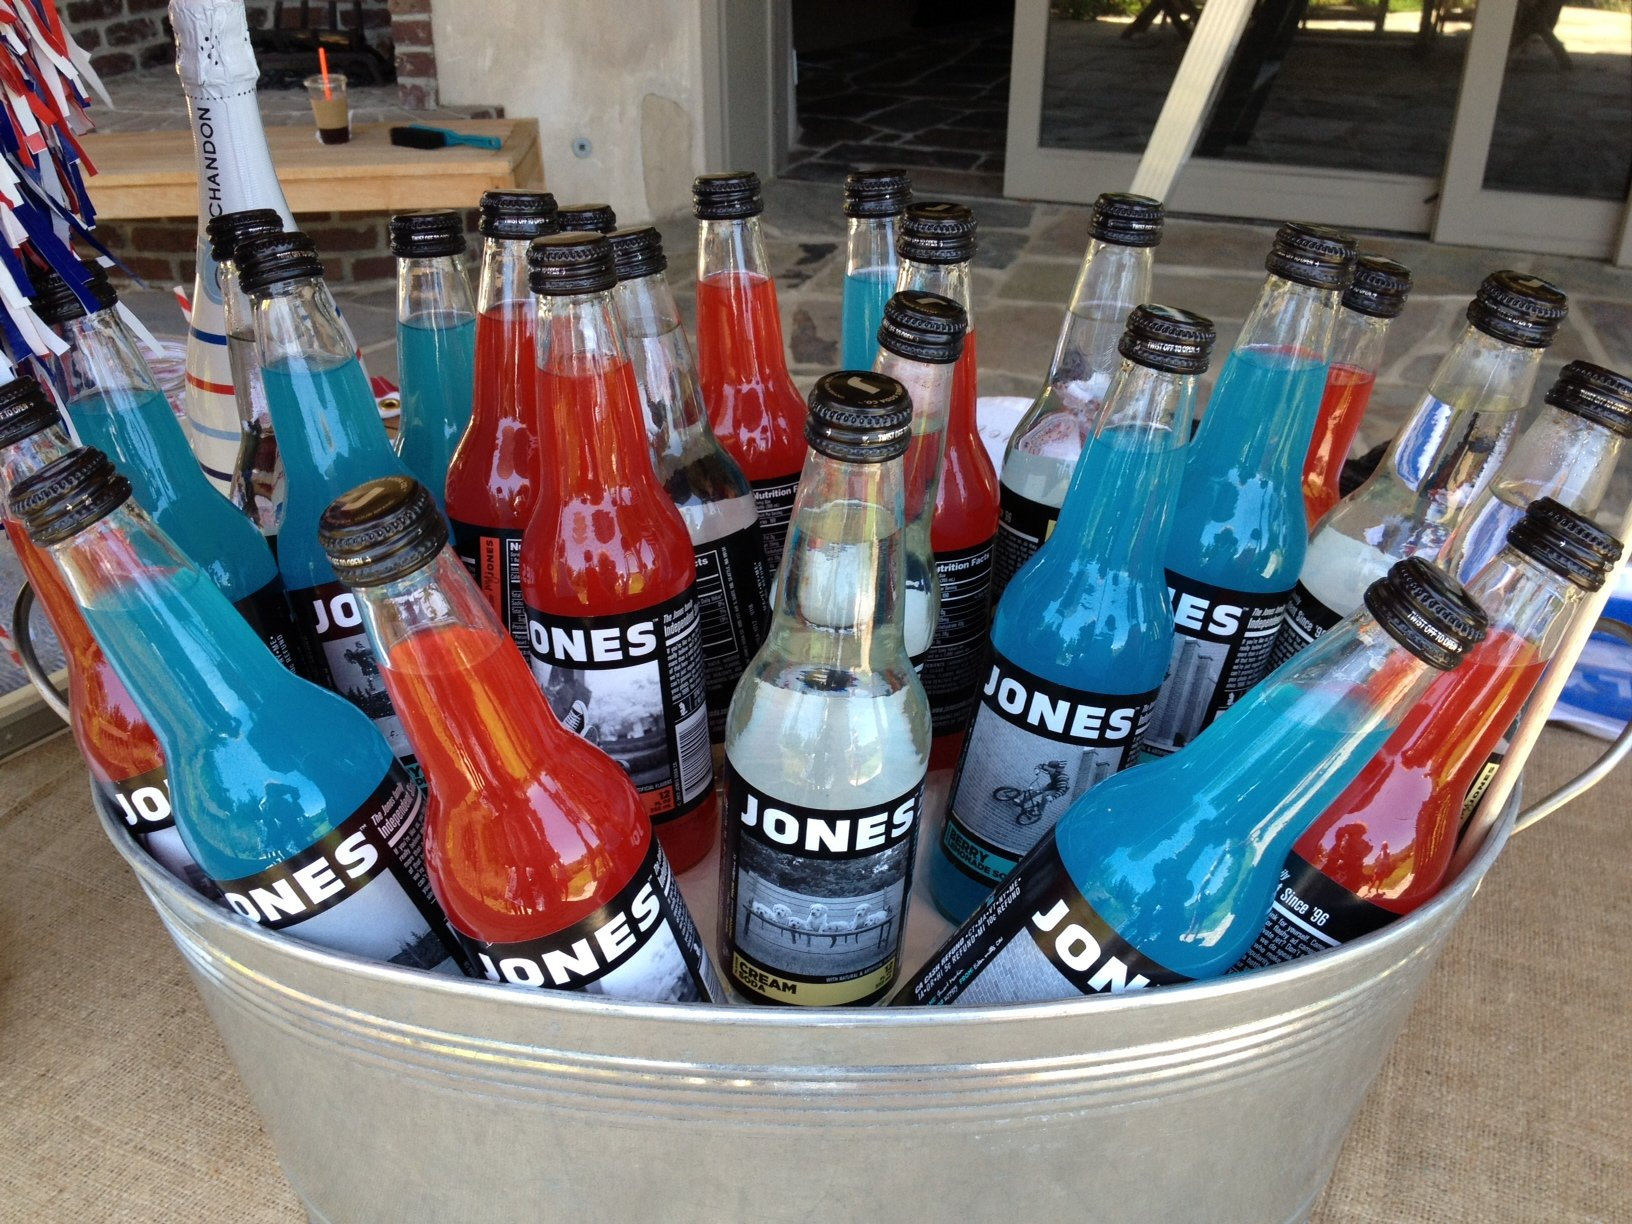 Patriotic Jones Soda & Galvanized Steel Tub